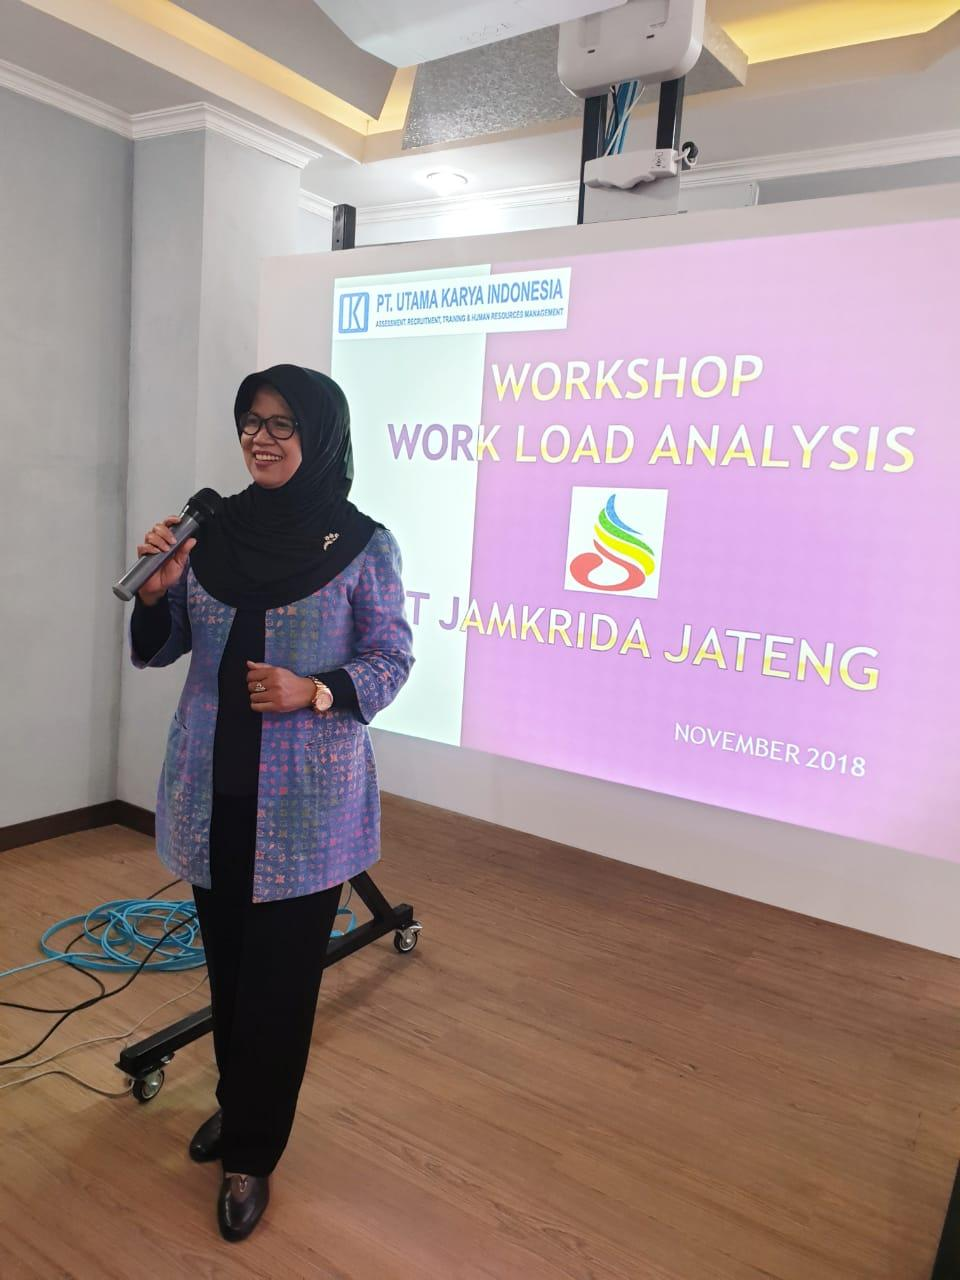 WORKSHOP WORK LOAD ANALYSIS PT JAMKRIDA JATENG